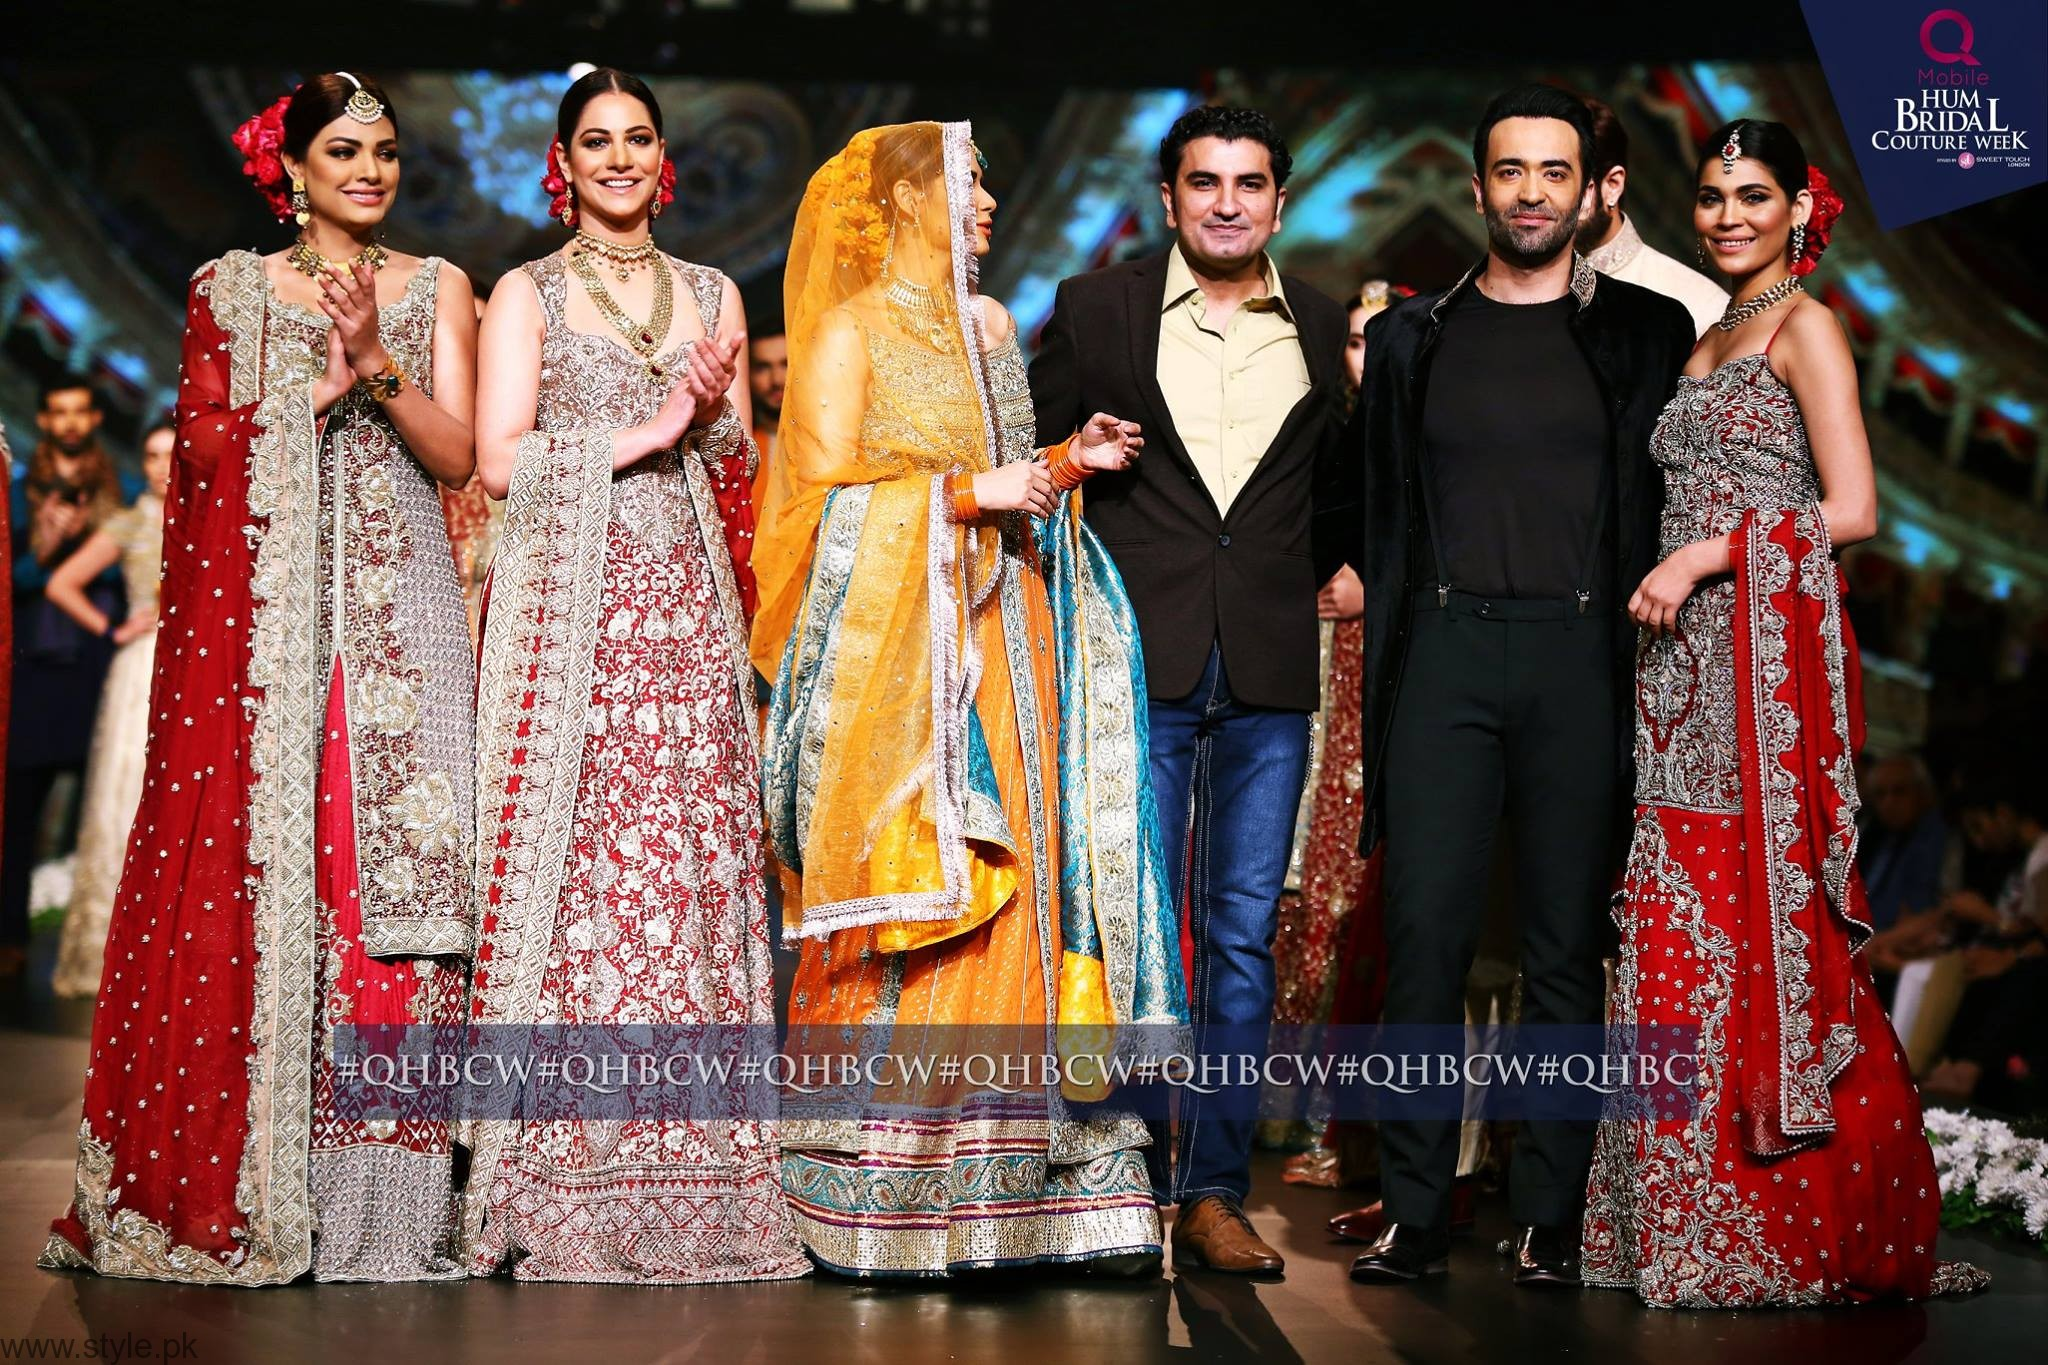 Farhad Humayun - Bridal Couture Week 2016 Day 1